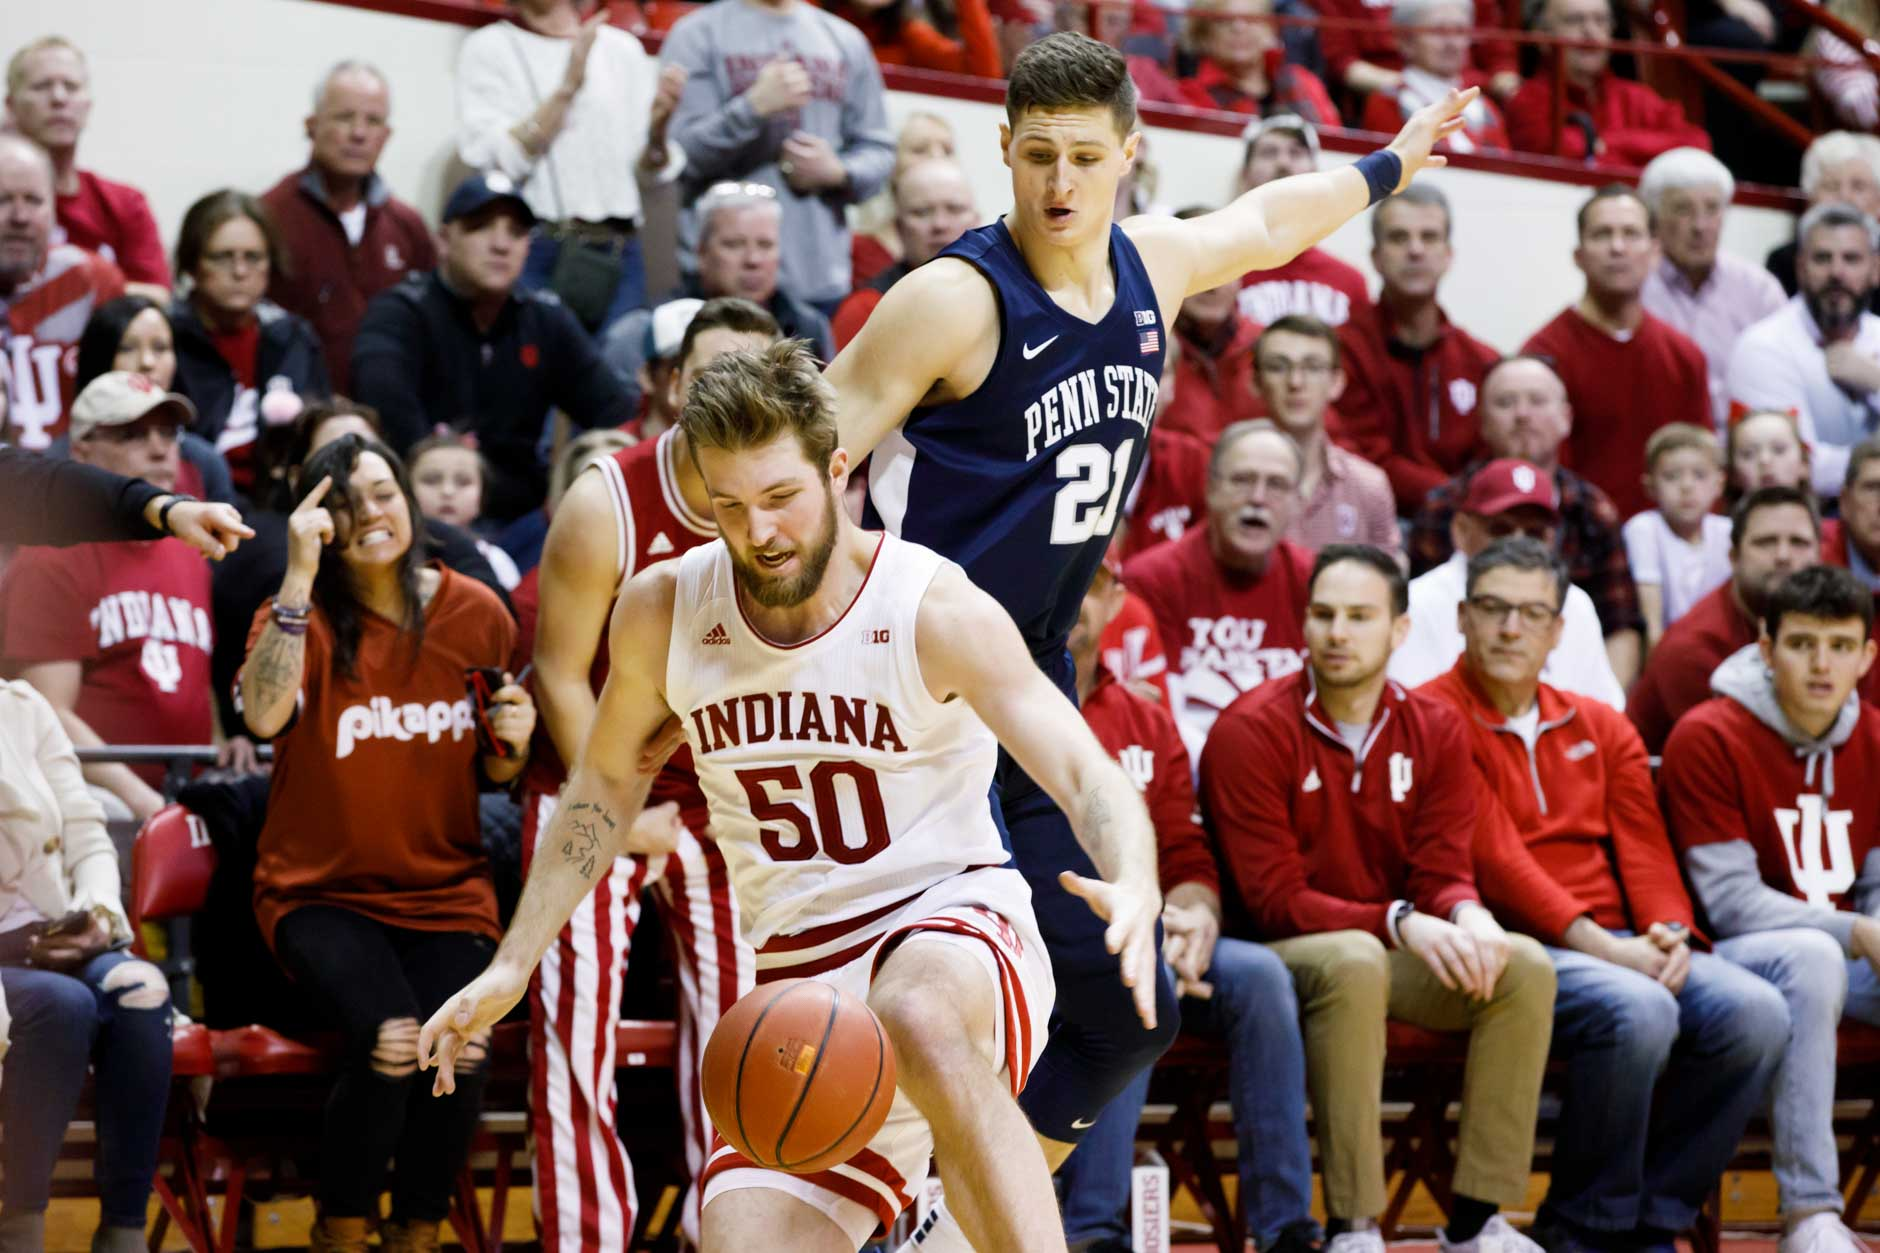 Penn State's John Harrar (21) and Indiana's Joey Brunk (50) compete for a loose ball during a NCAA men's basketball game at Simon Skjodt Assembly Hall in Bloomington, Indiana on Sunday, Feb. 23, 2020. (Photo by James Brosher)